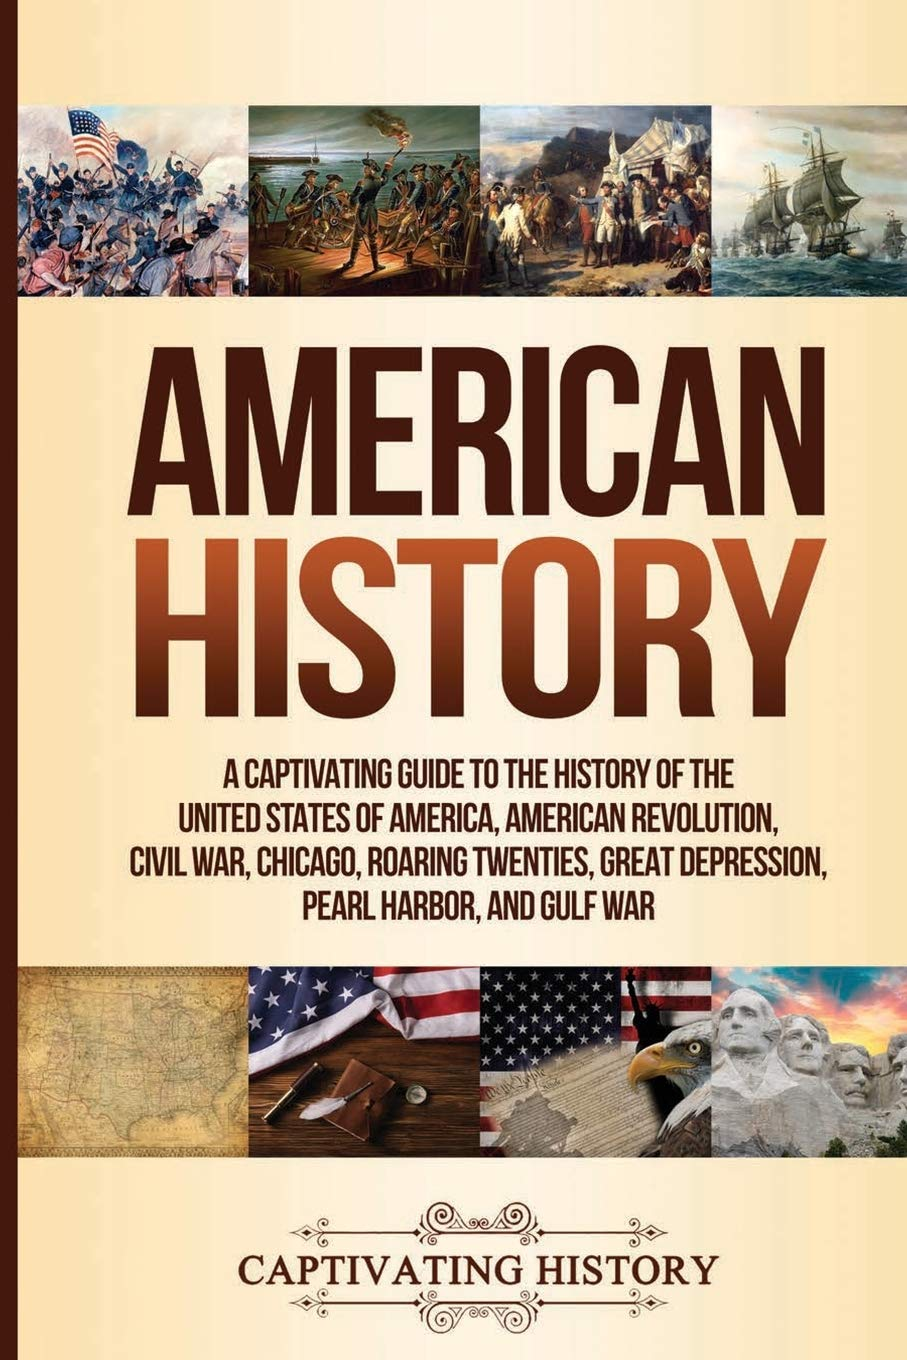 American History: A Captivating Guide to the History of the United States of America, American Revolution, Civil War, Chicago, Roaring Twenties, Great Depression, Pearl Harbor, and Gulf War